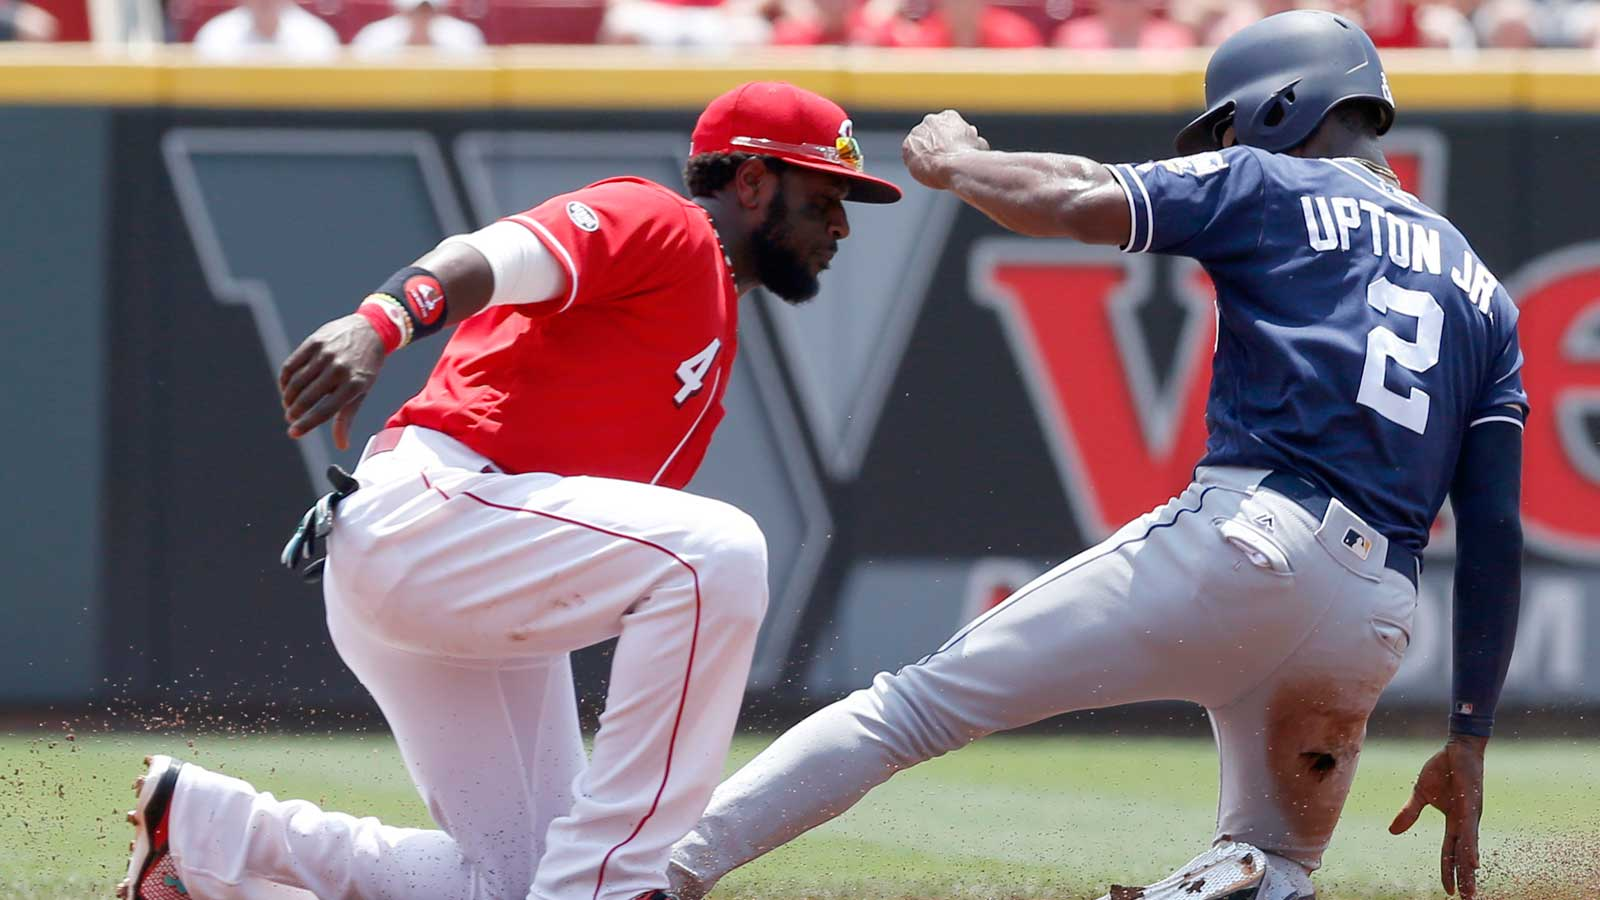 Padres' 3-0 loss to Reds finishes successful series